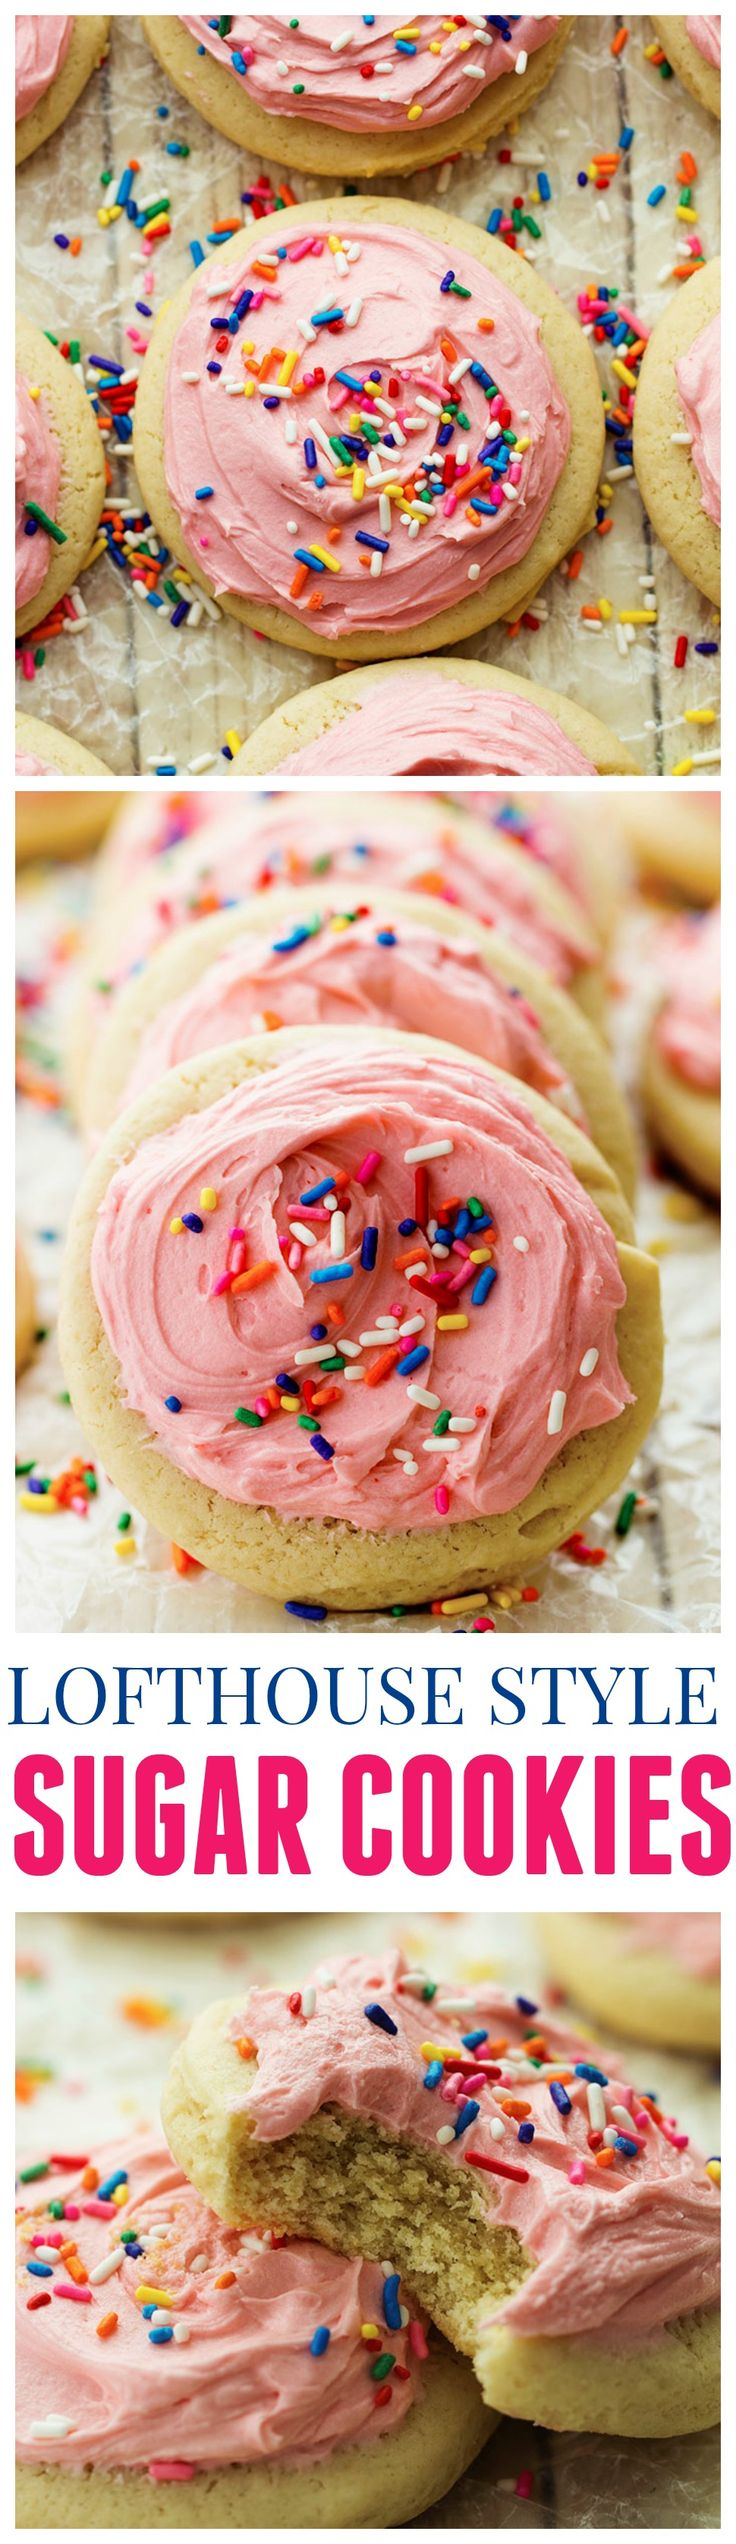 These Lofthouse Style Cookies are the softest puffiest cake like cookies and amazing with the buttercream frosting!!